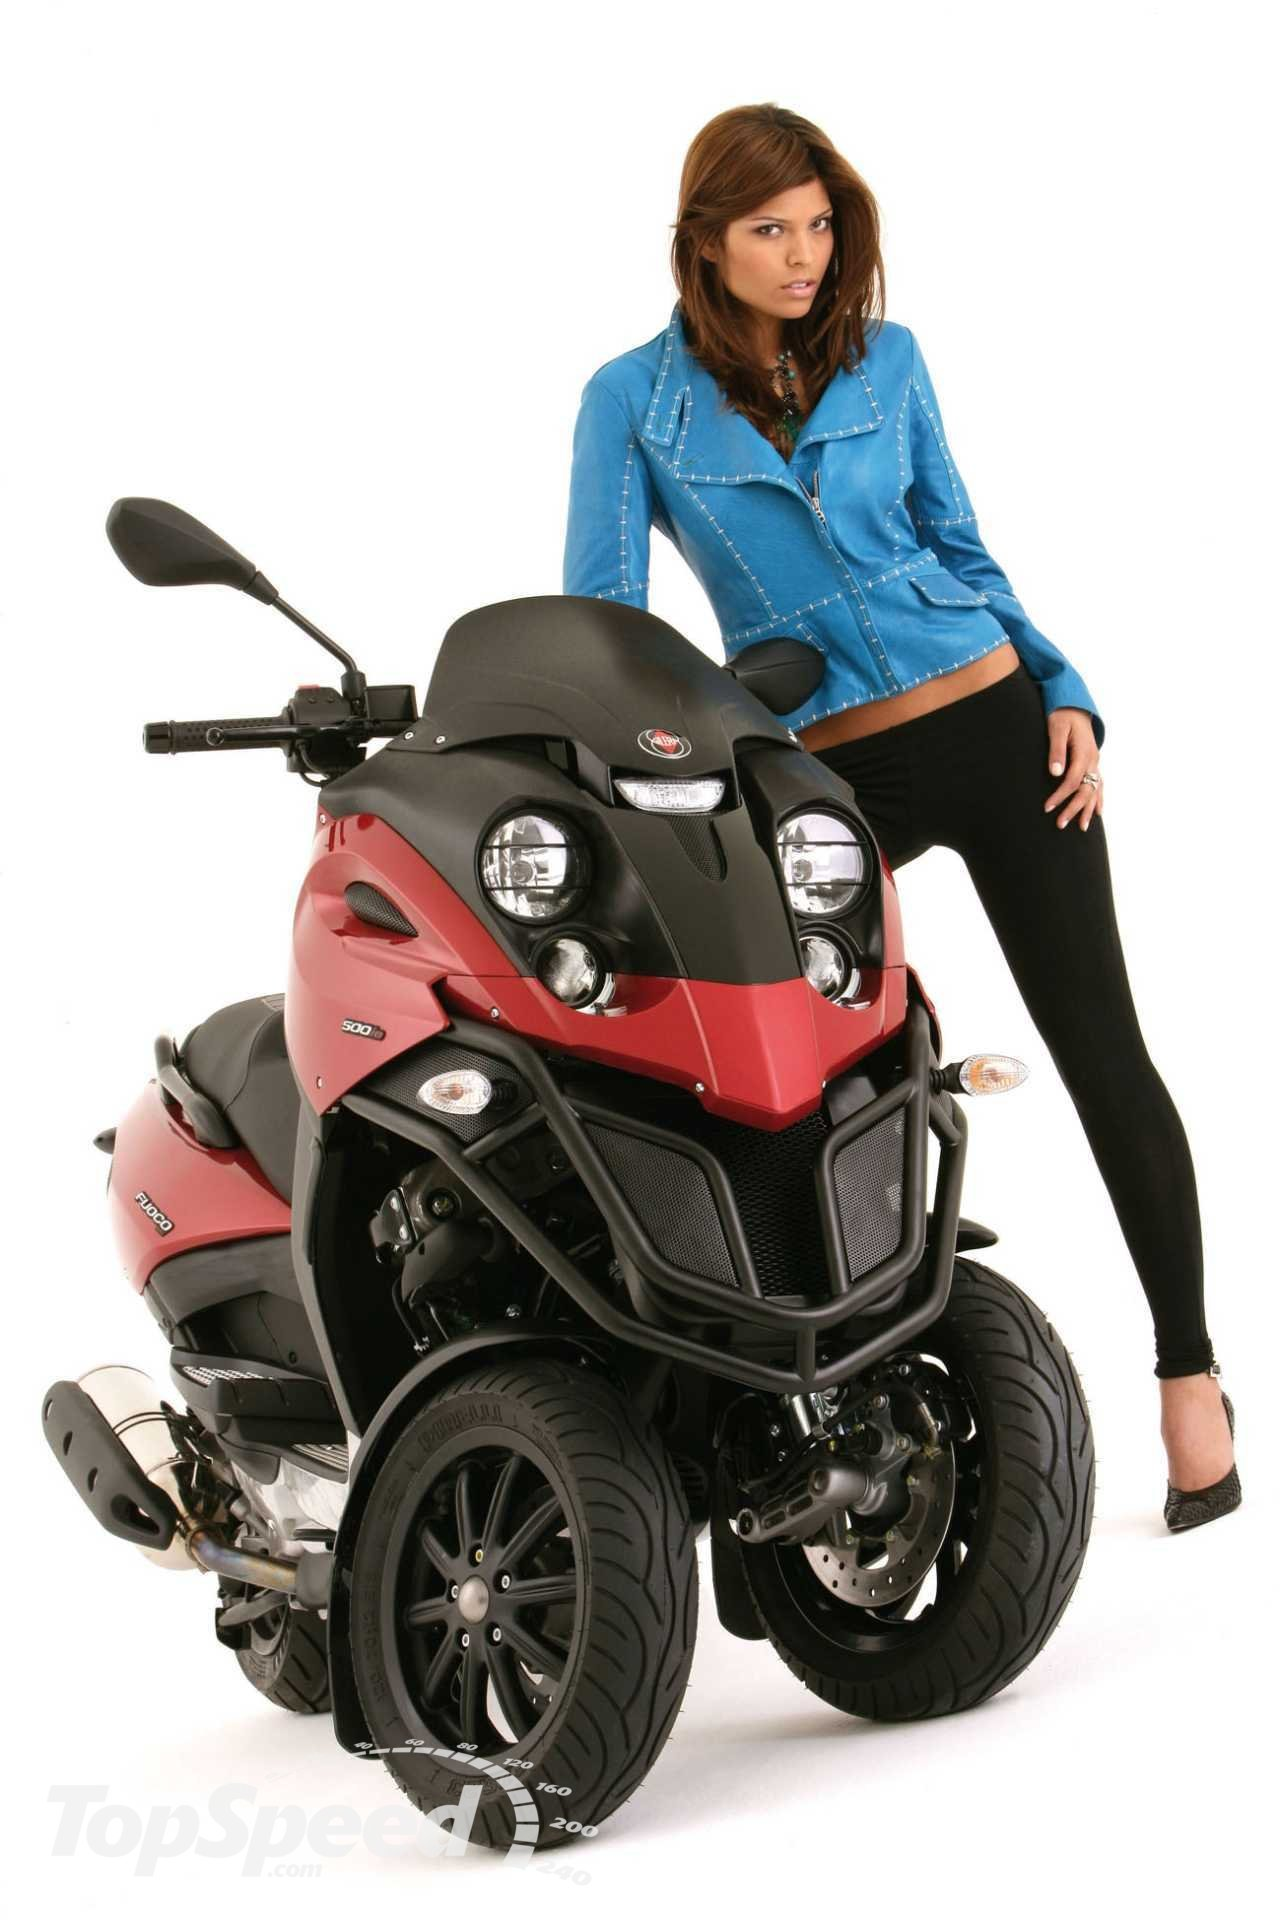 Gilera Fuoco 500 ie 2008 images #74164